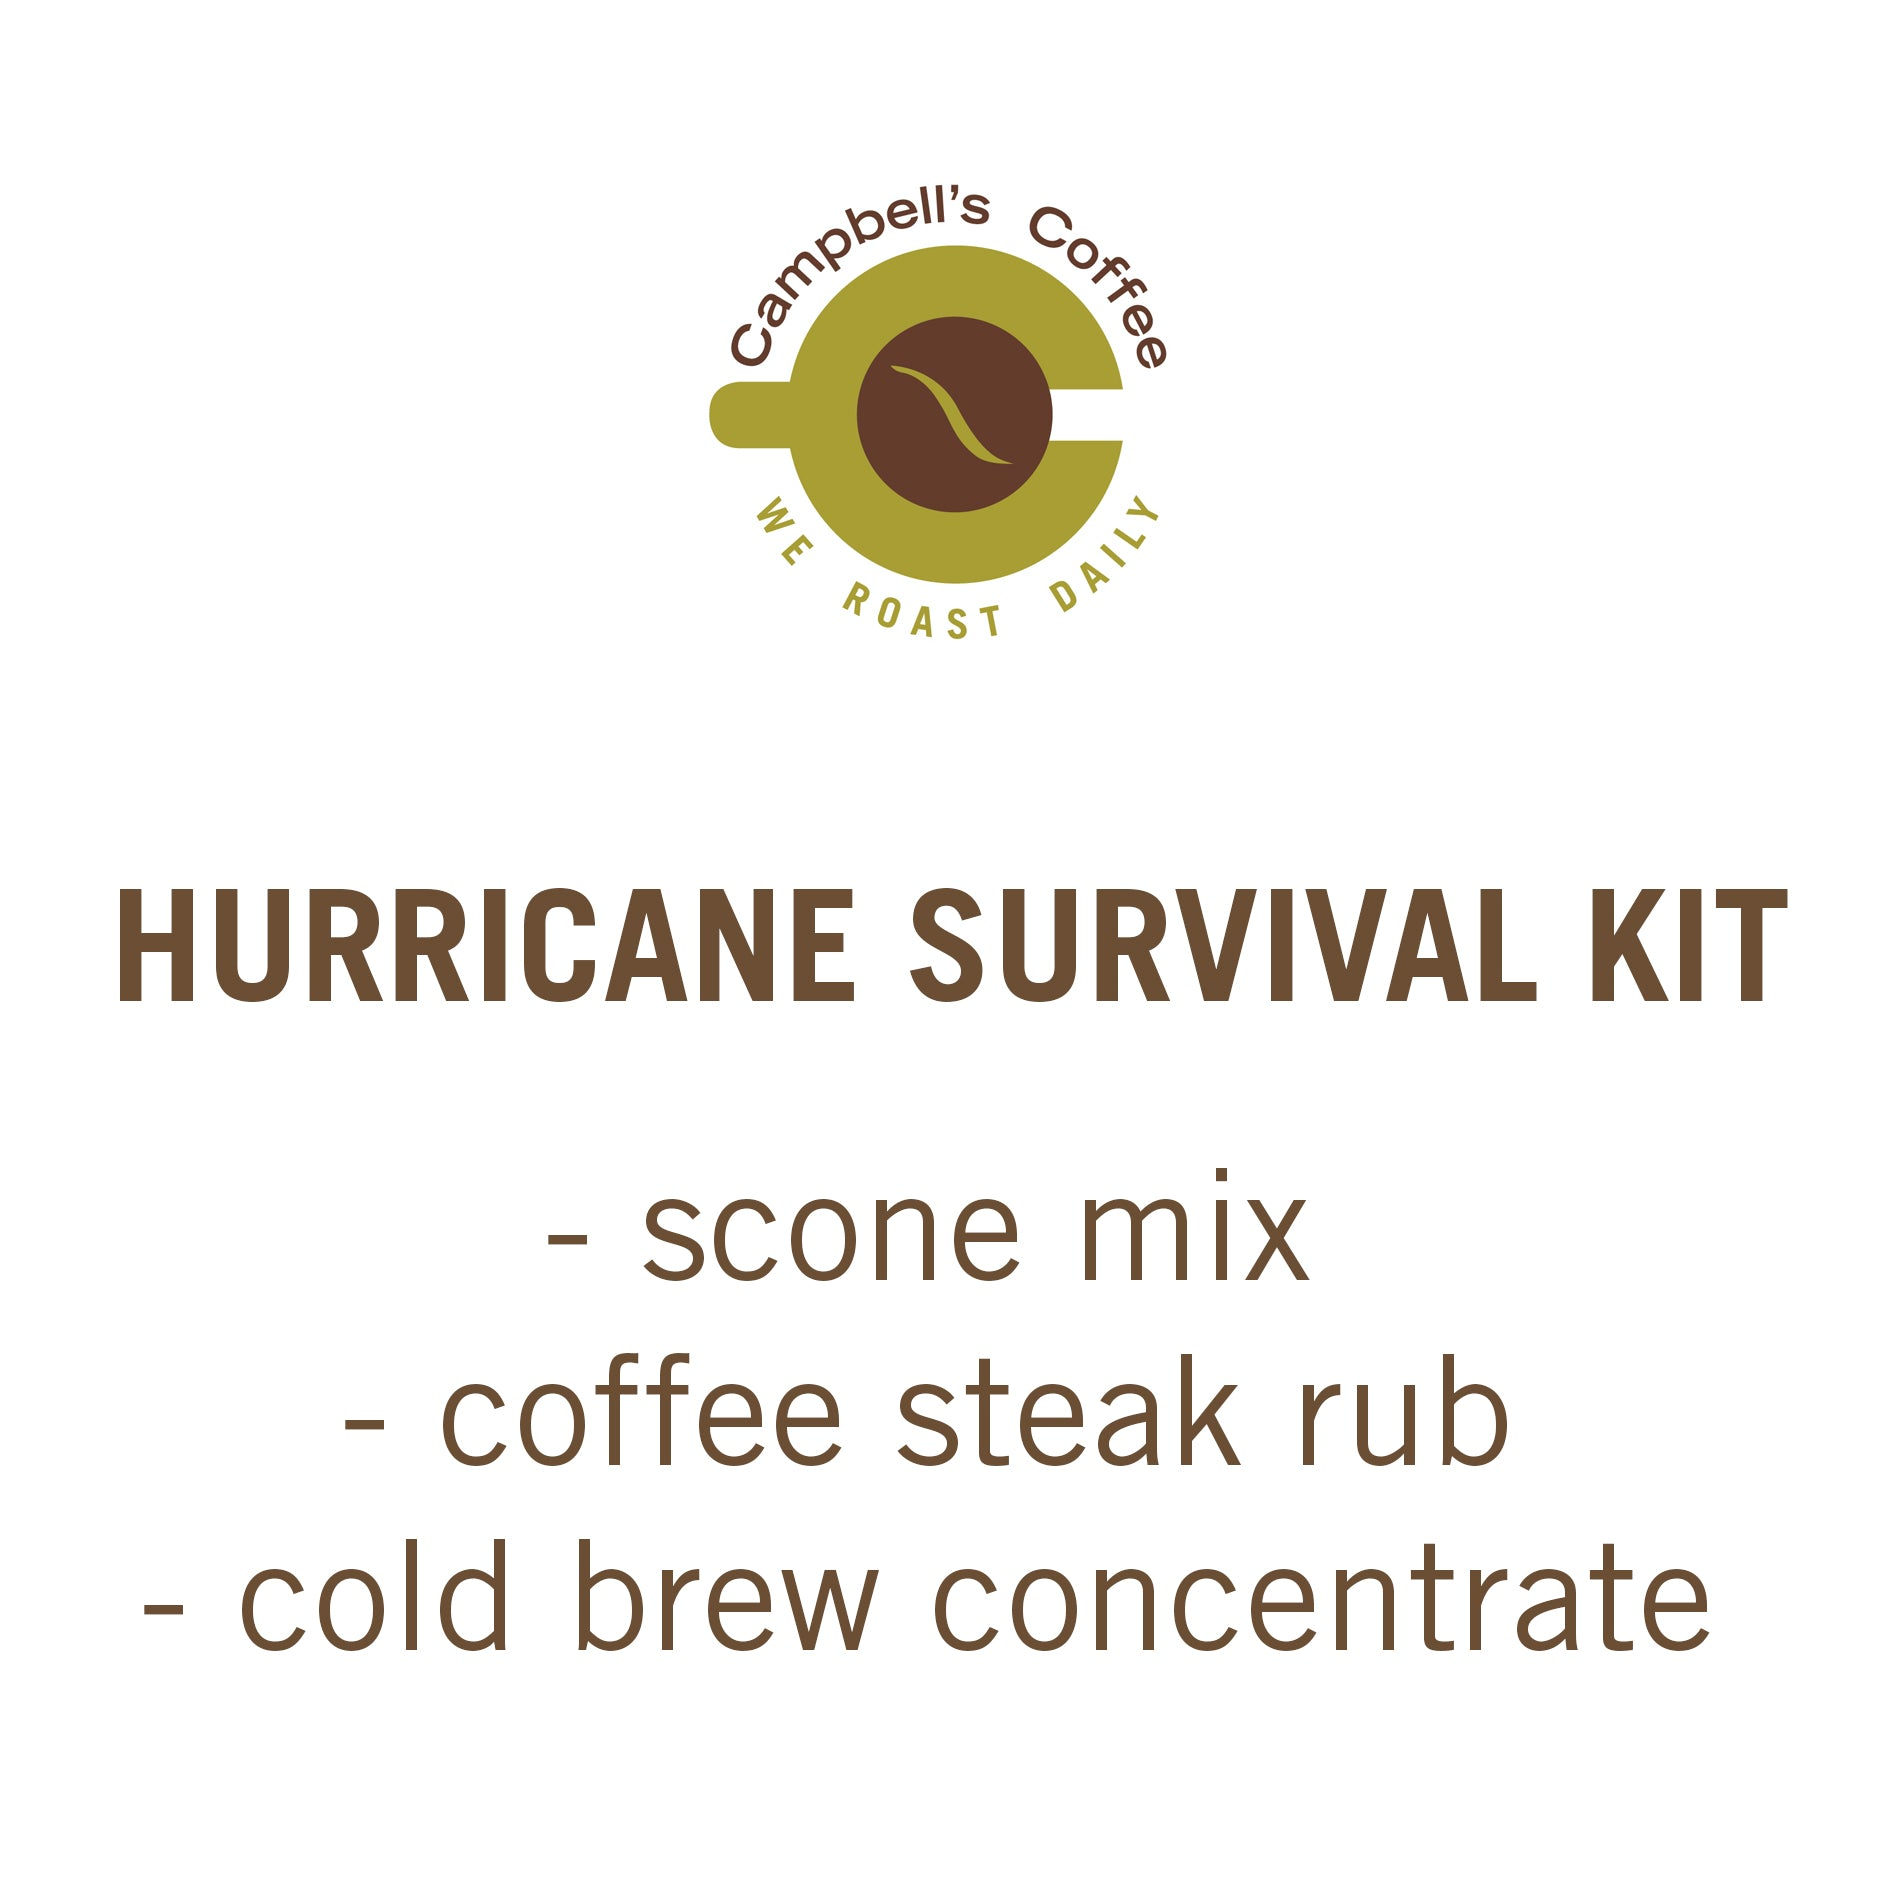 Hurricane Survival Kit #1